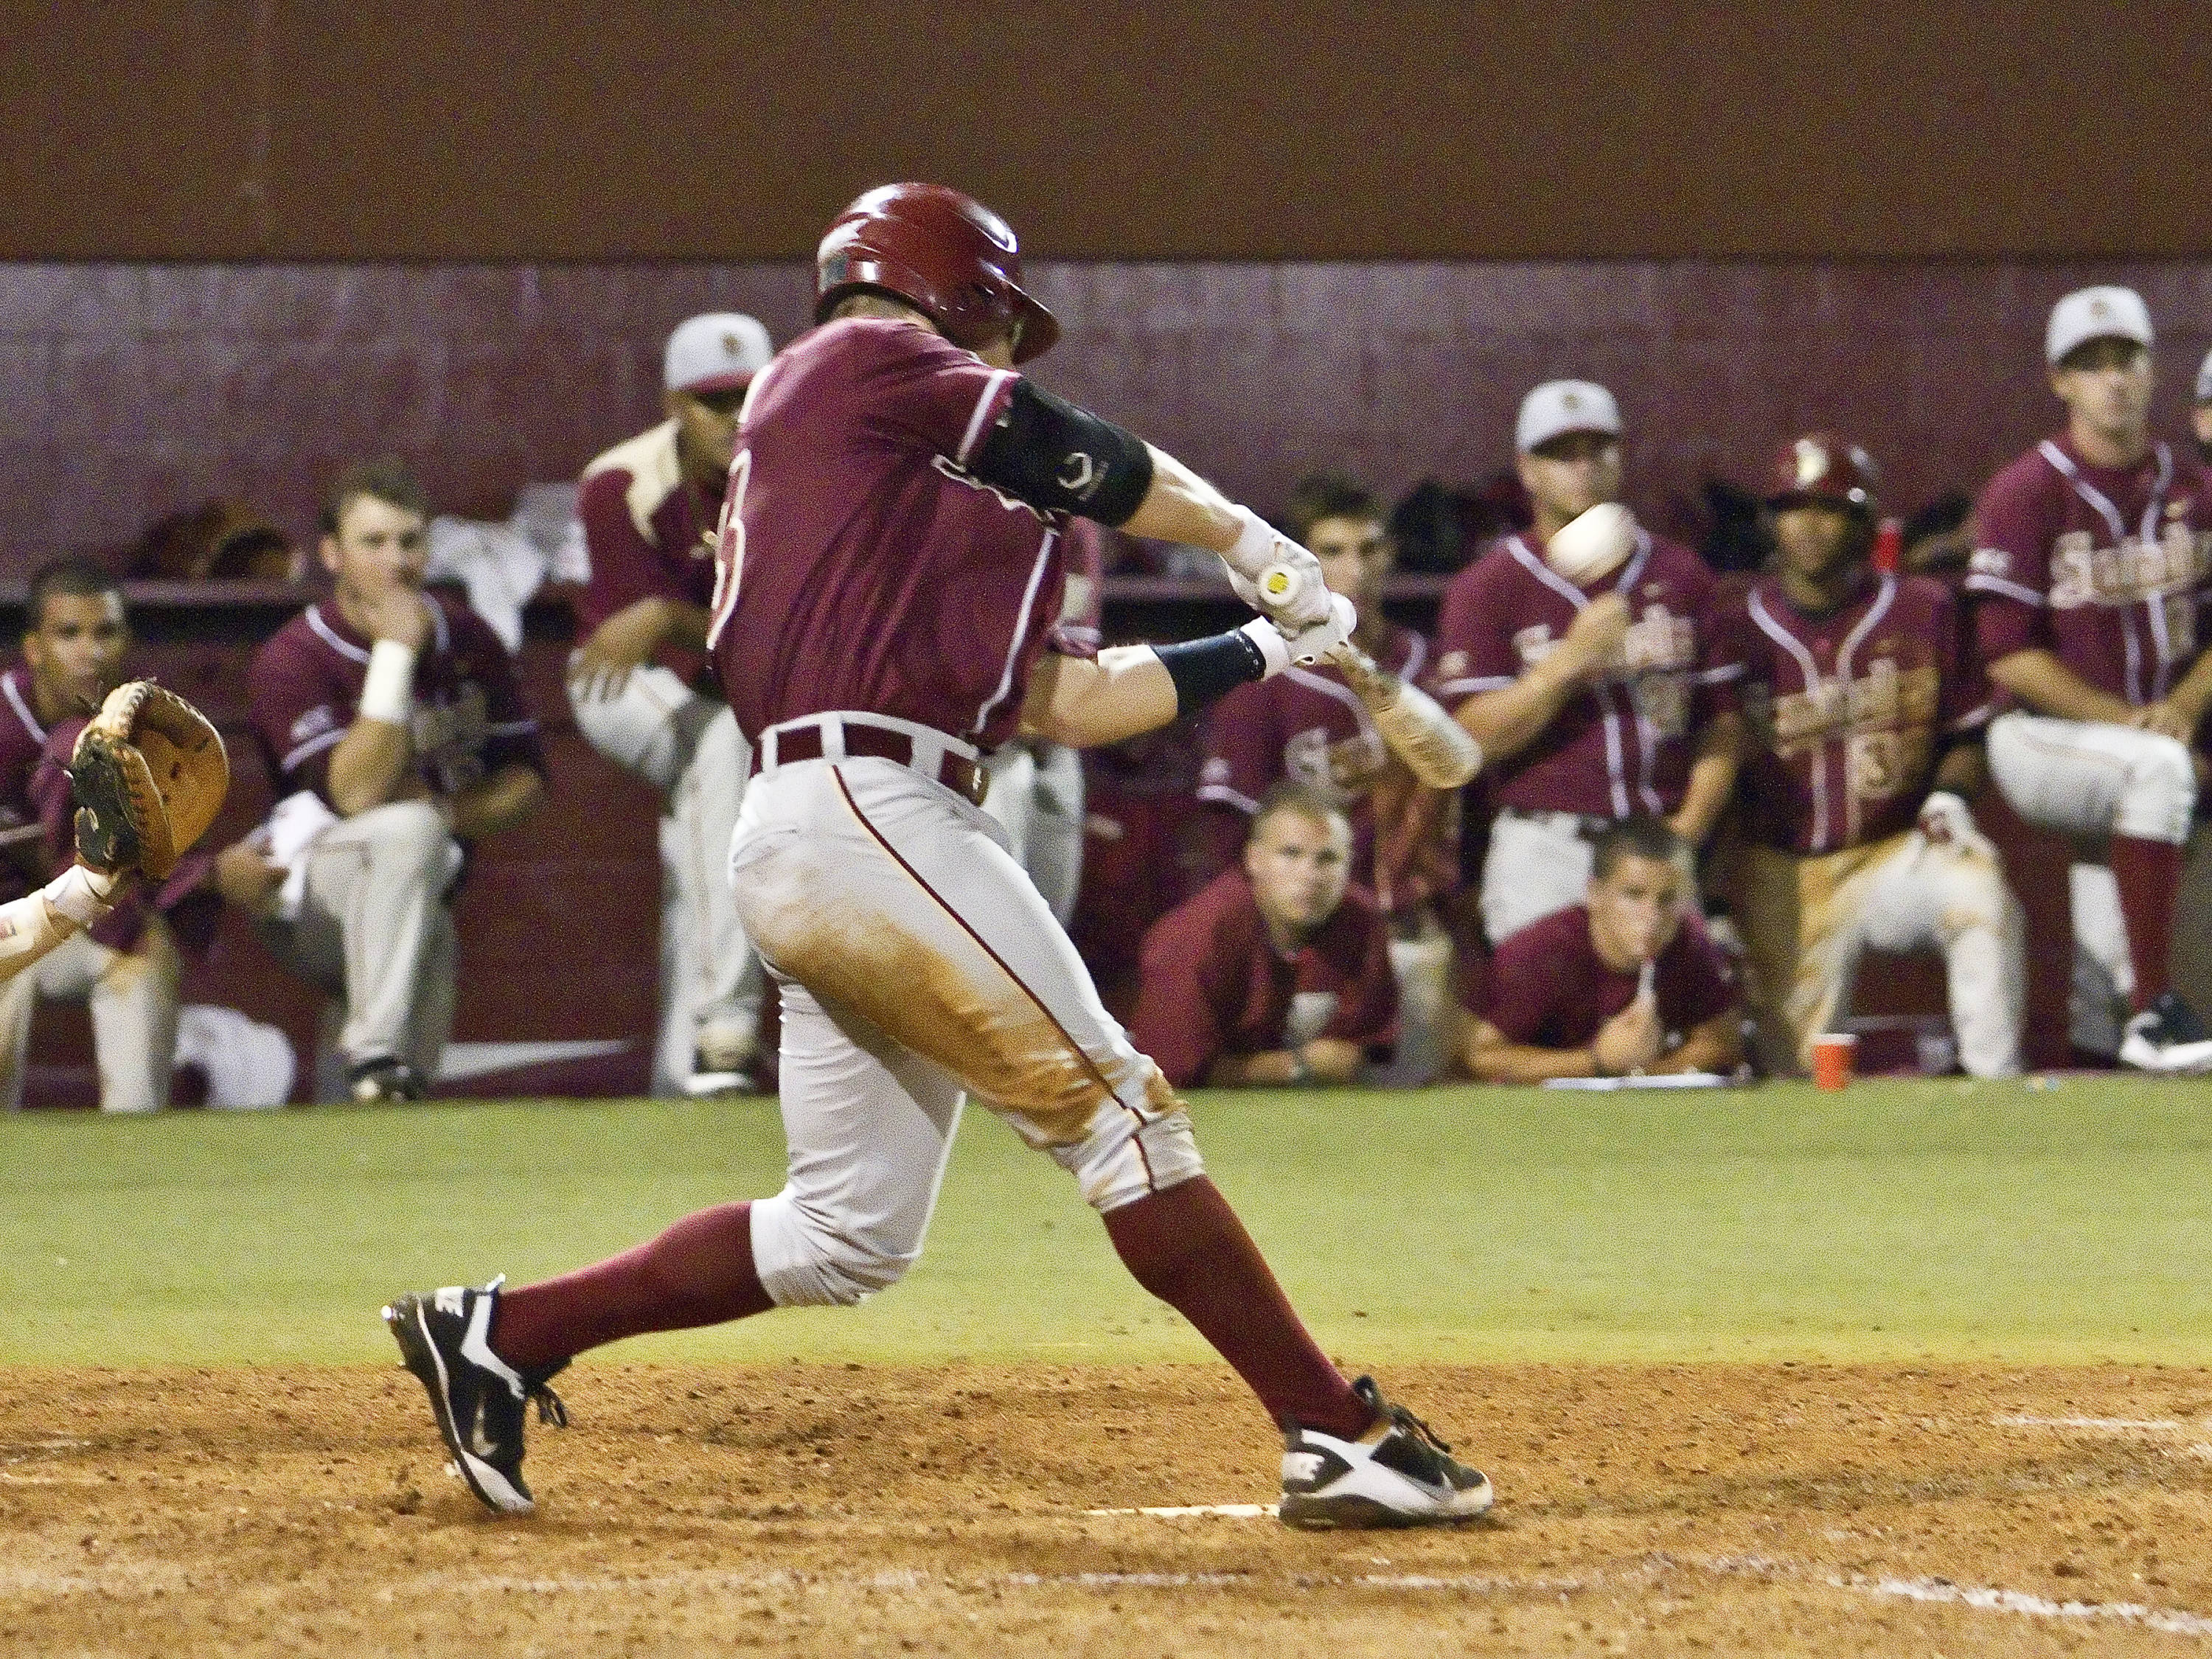 Outfielder James Ramsey (23) launching his rbi double in the 8th inning